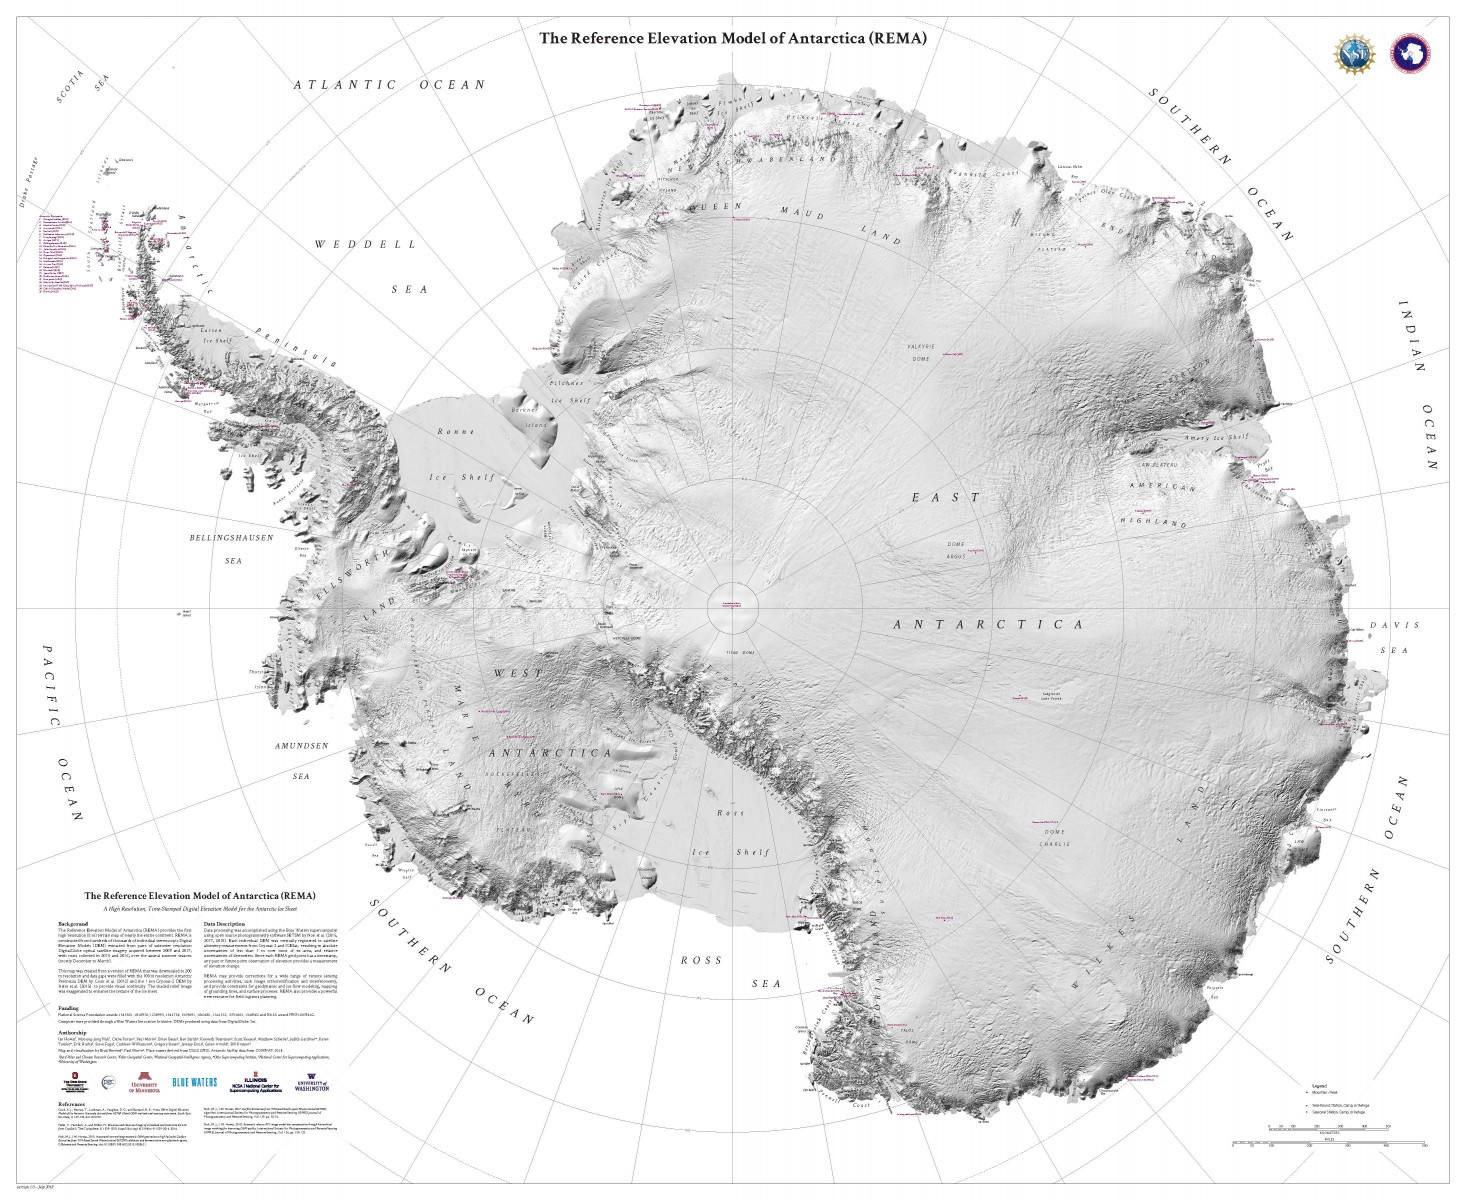 Reference Elevation Model of Antarctica